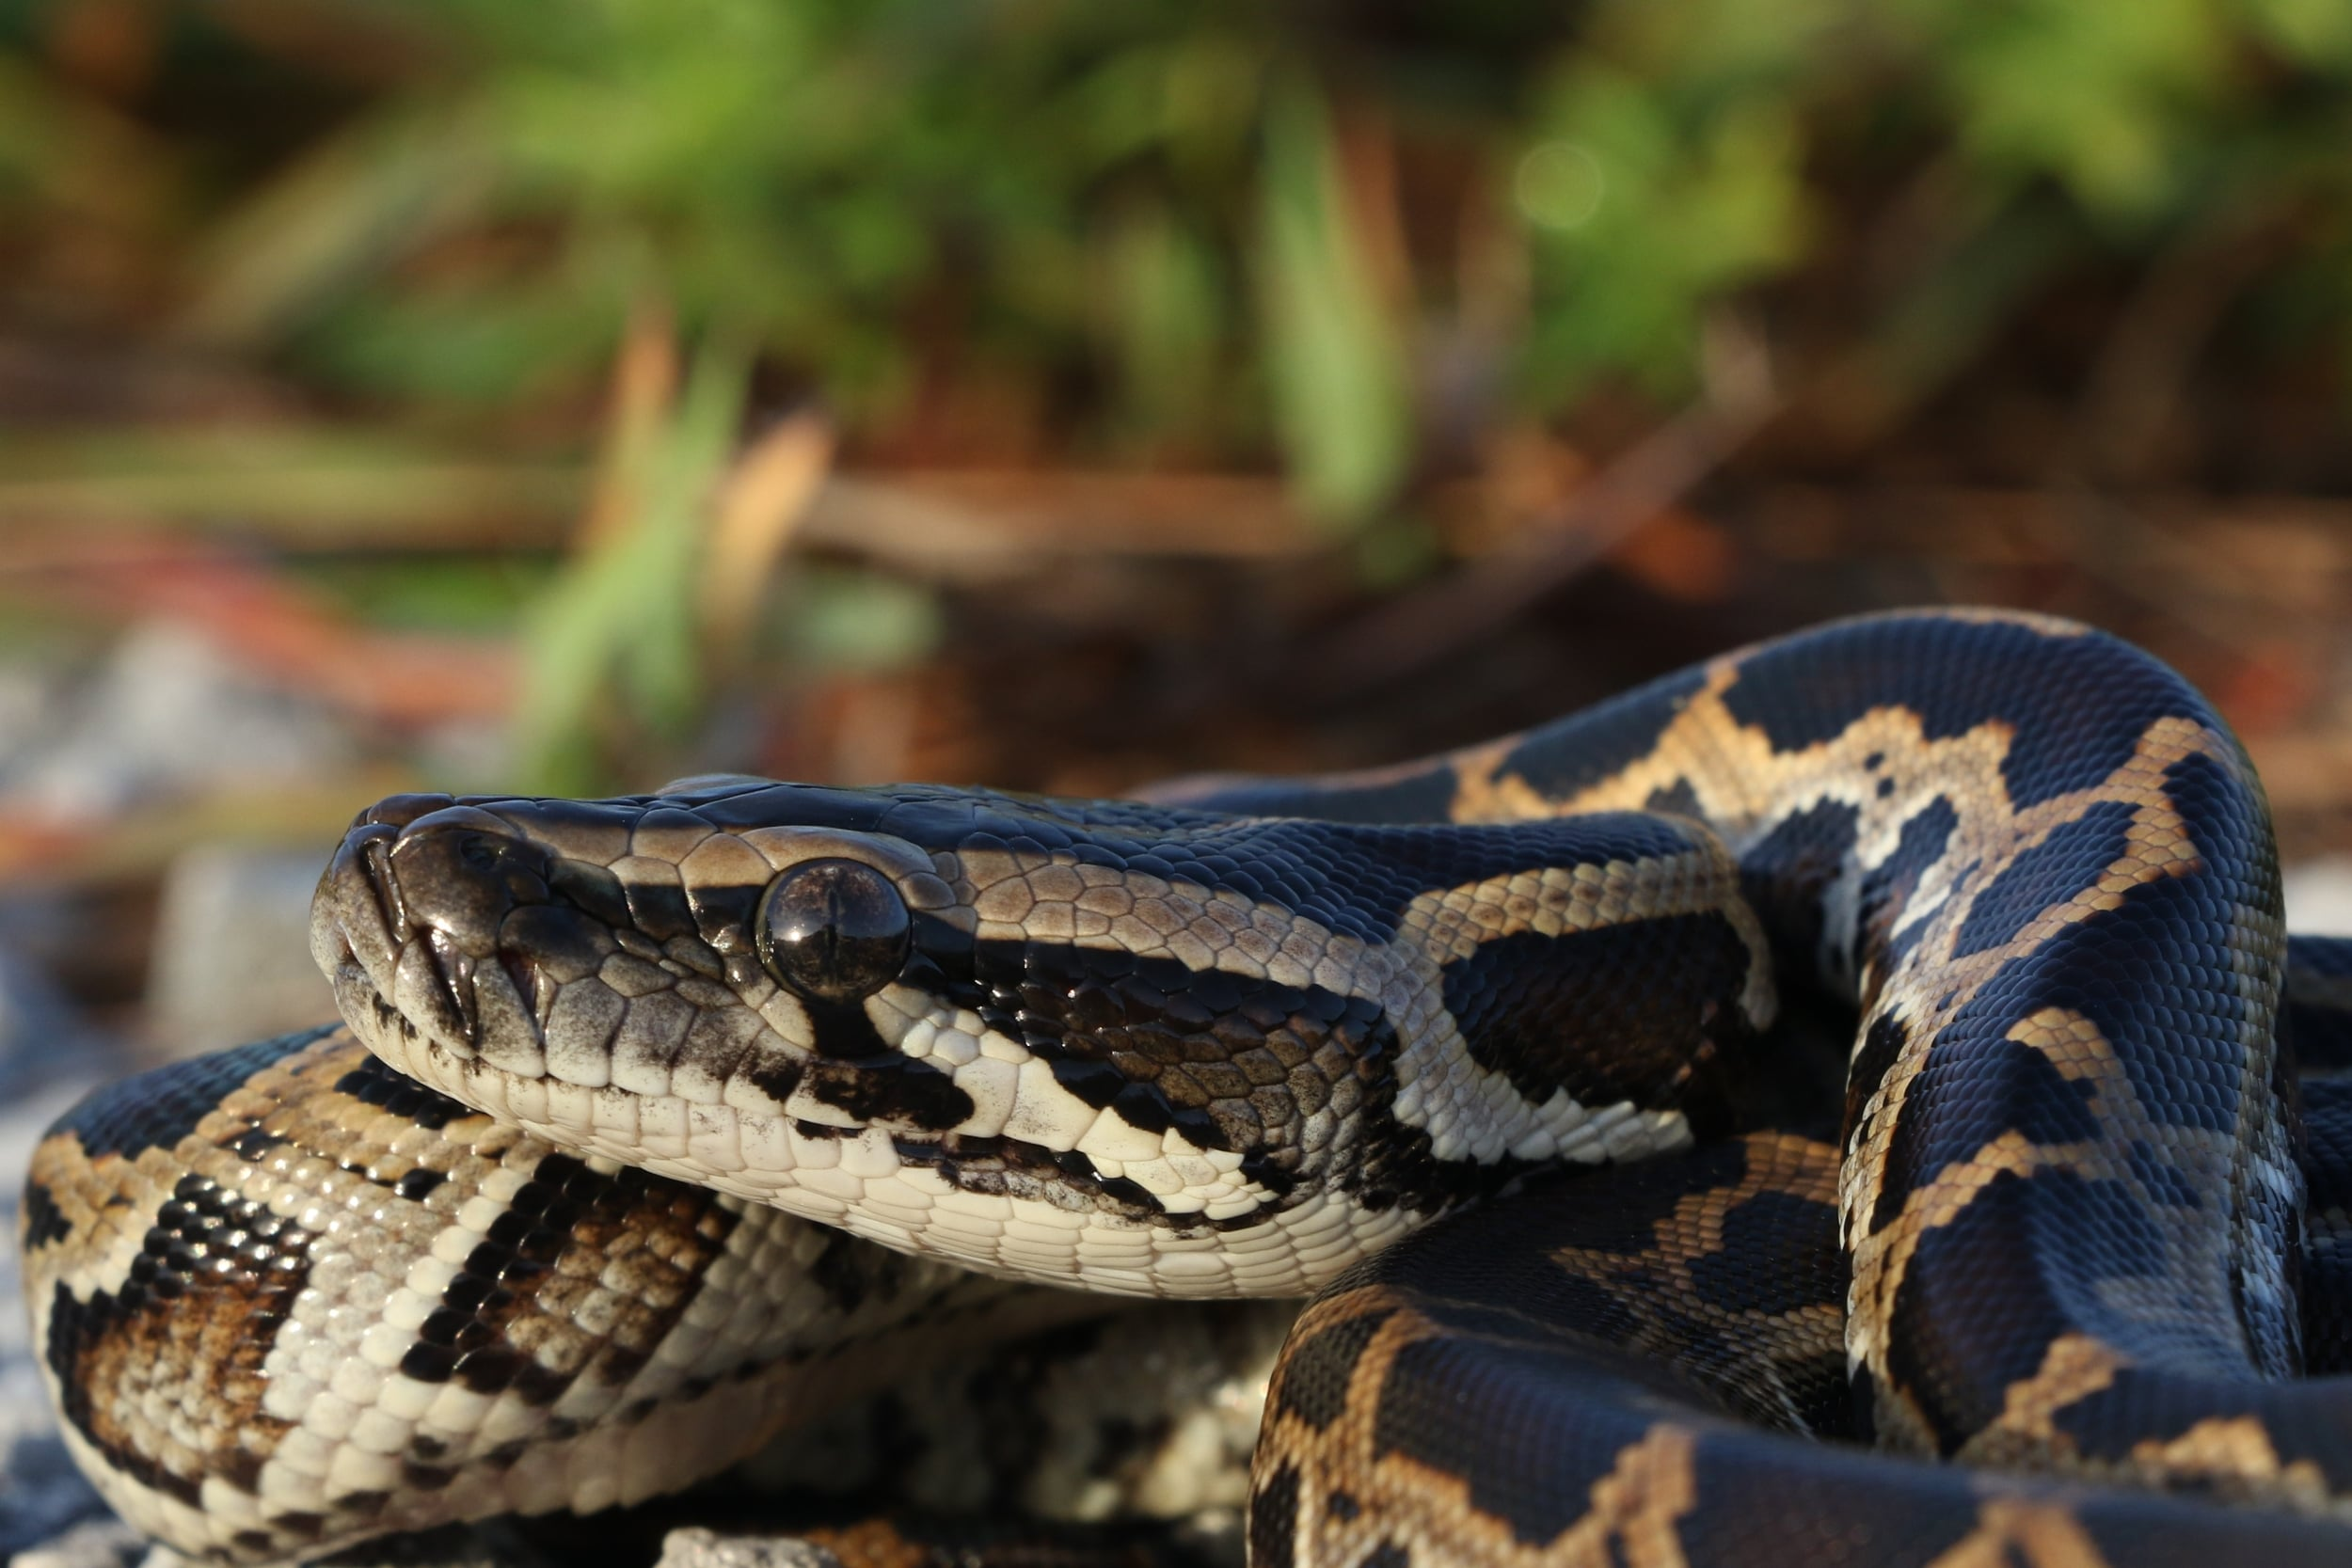 Burmese Python - One of the four we saw. The first one was roadcruised and honestly, if it weren't for my son I would not have seen it. Invasive, but beautiful animals. This blog isn't about what's right and wrong. ...just the snakes I saw.